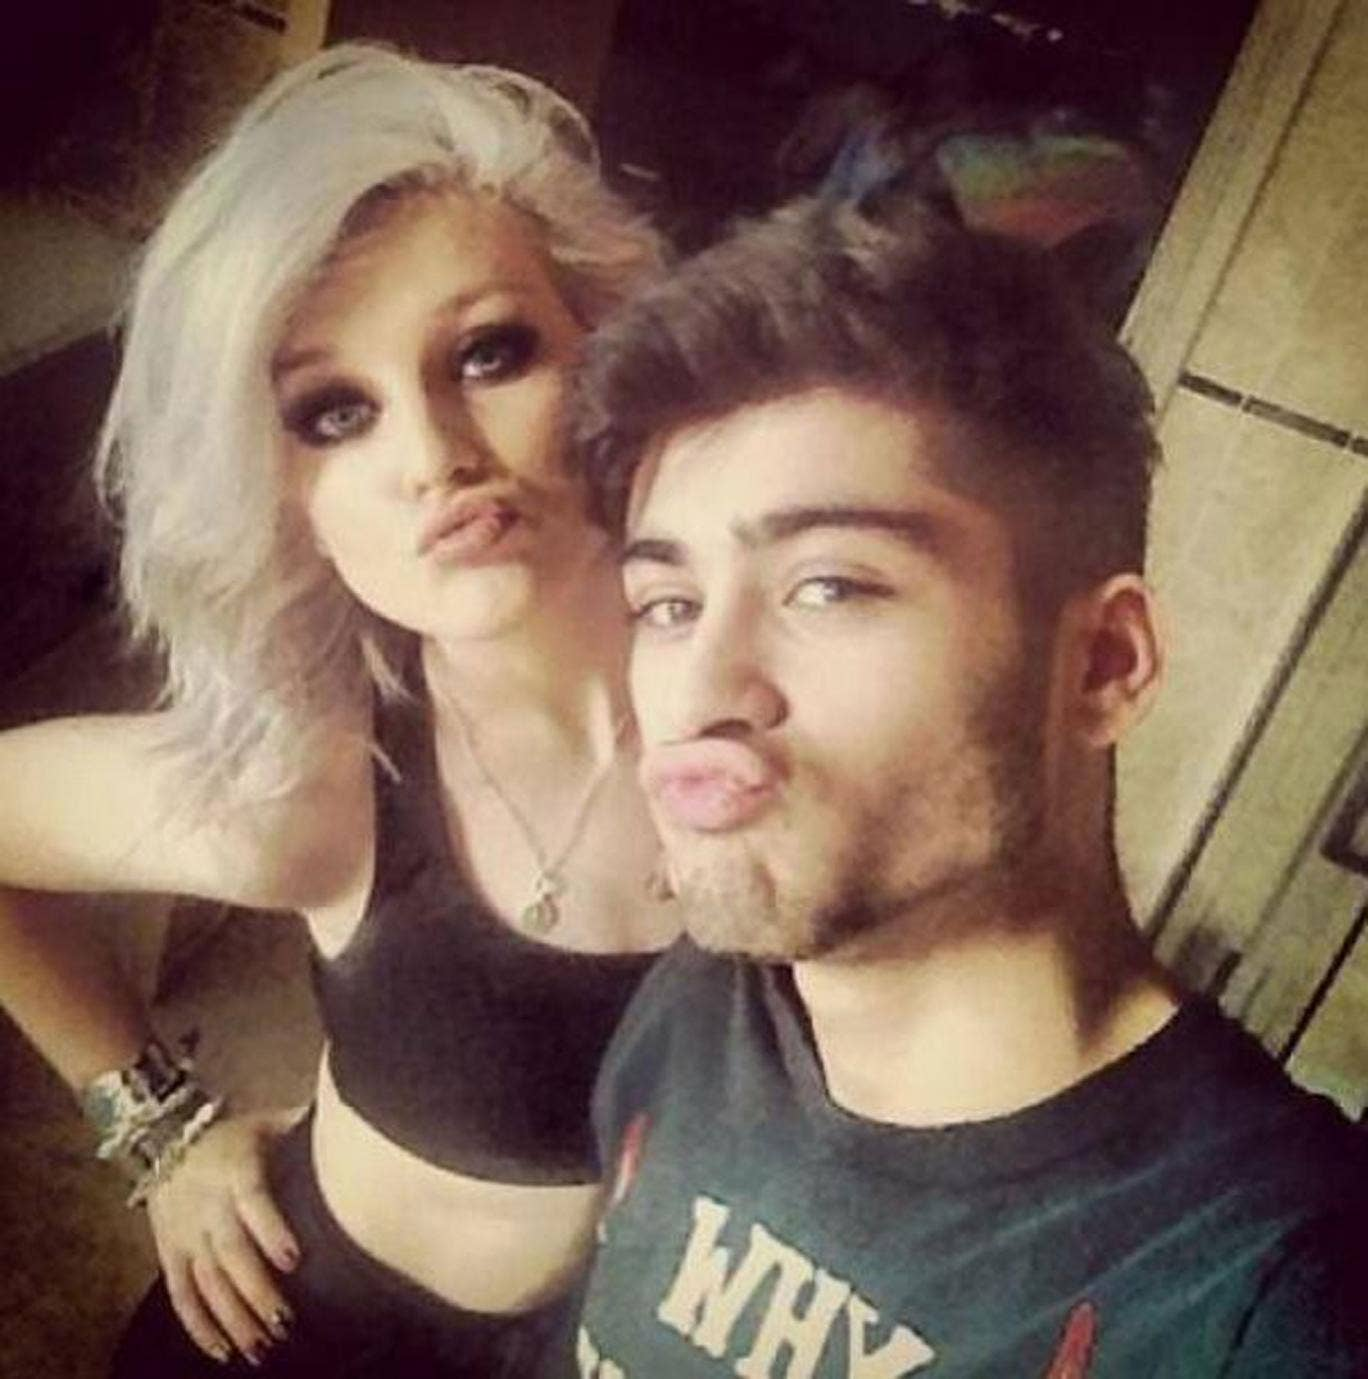 Zayn and Perrie in their selfie making full-on duck faces, kissy smooches as they pose next to each other